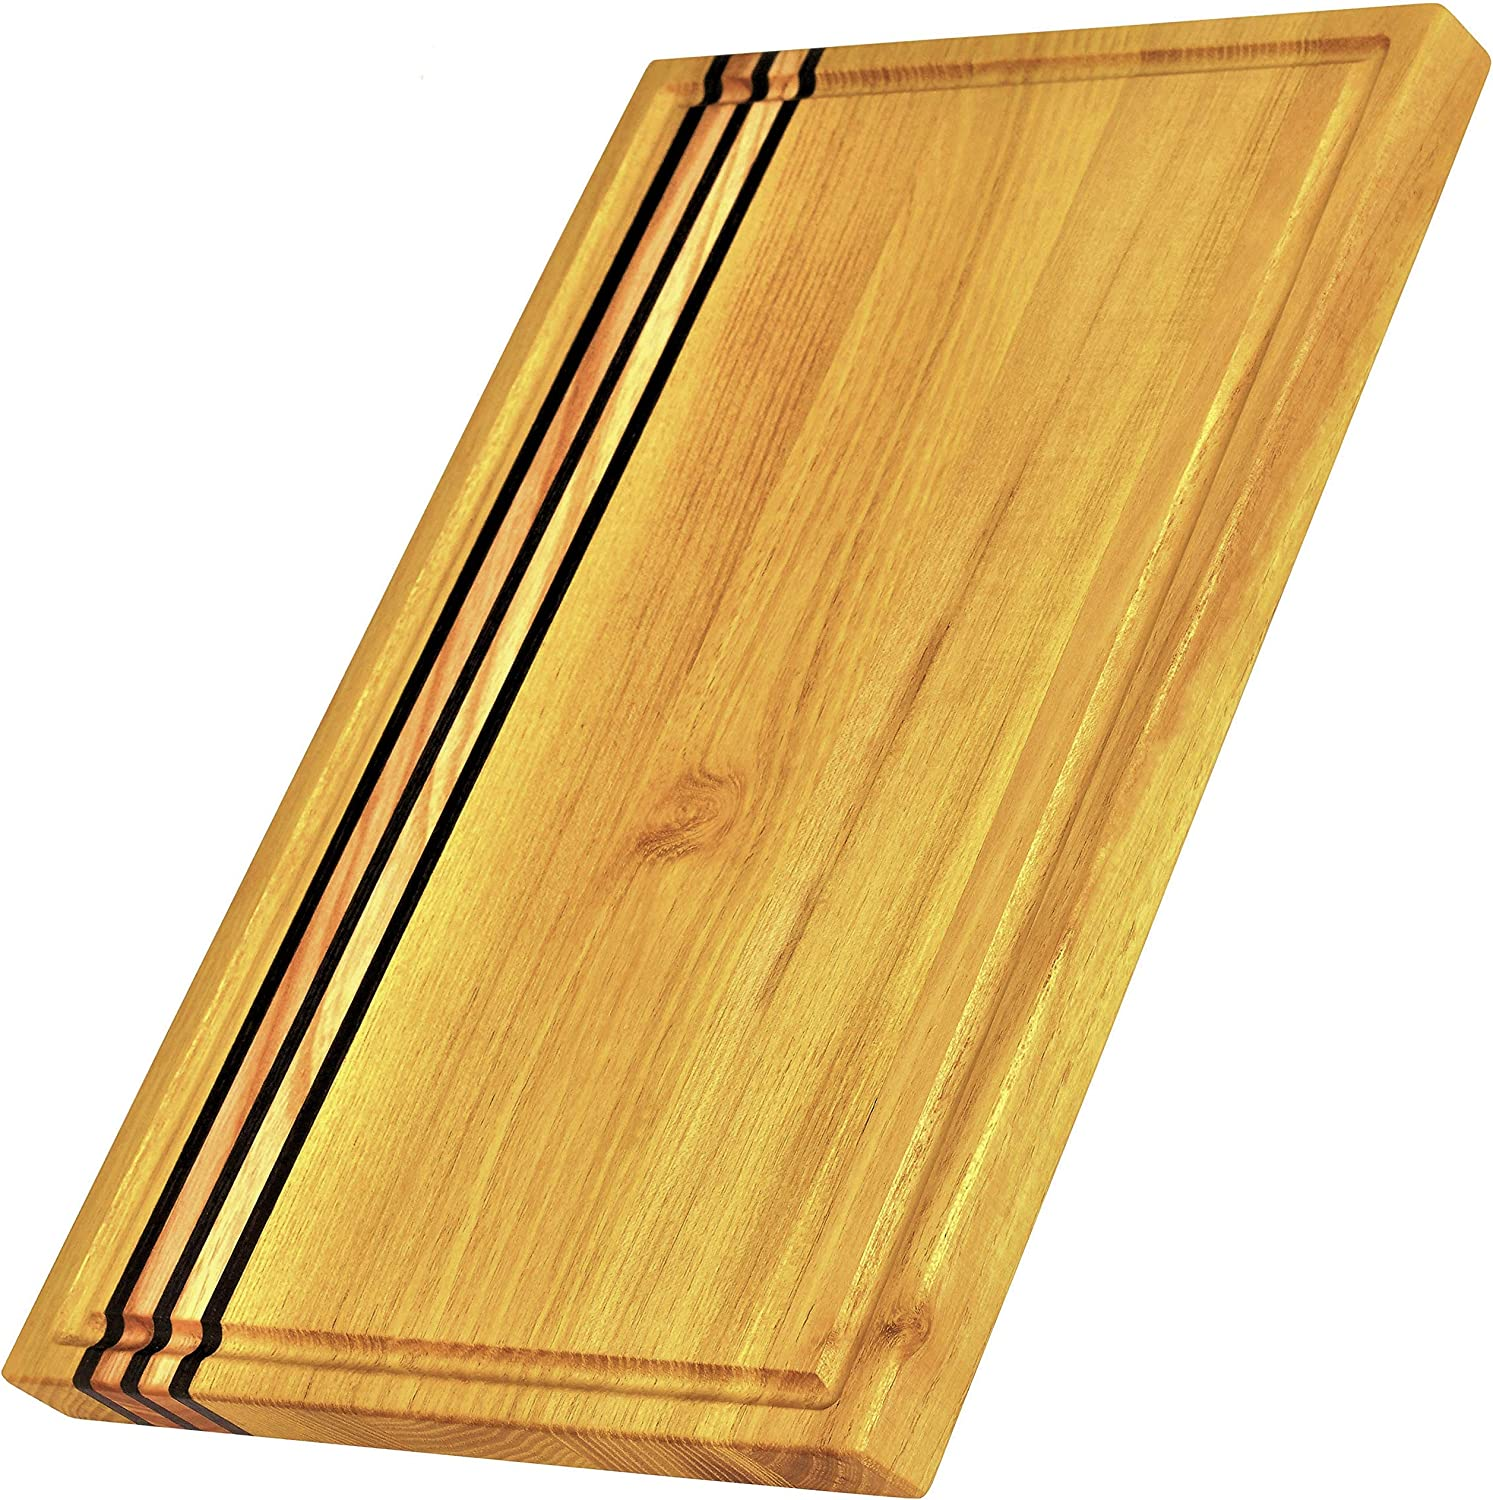 Large Multipurpose Wood Cutting Board Made From Acacia: 16x10x0.7 Cutting Board With Juice Groove For Yours Kitchen. Universal Chopping Board Wood. Eco Friendly Large Chopping Board.